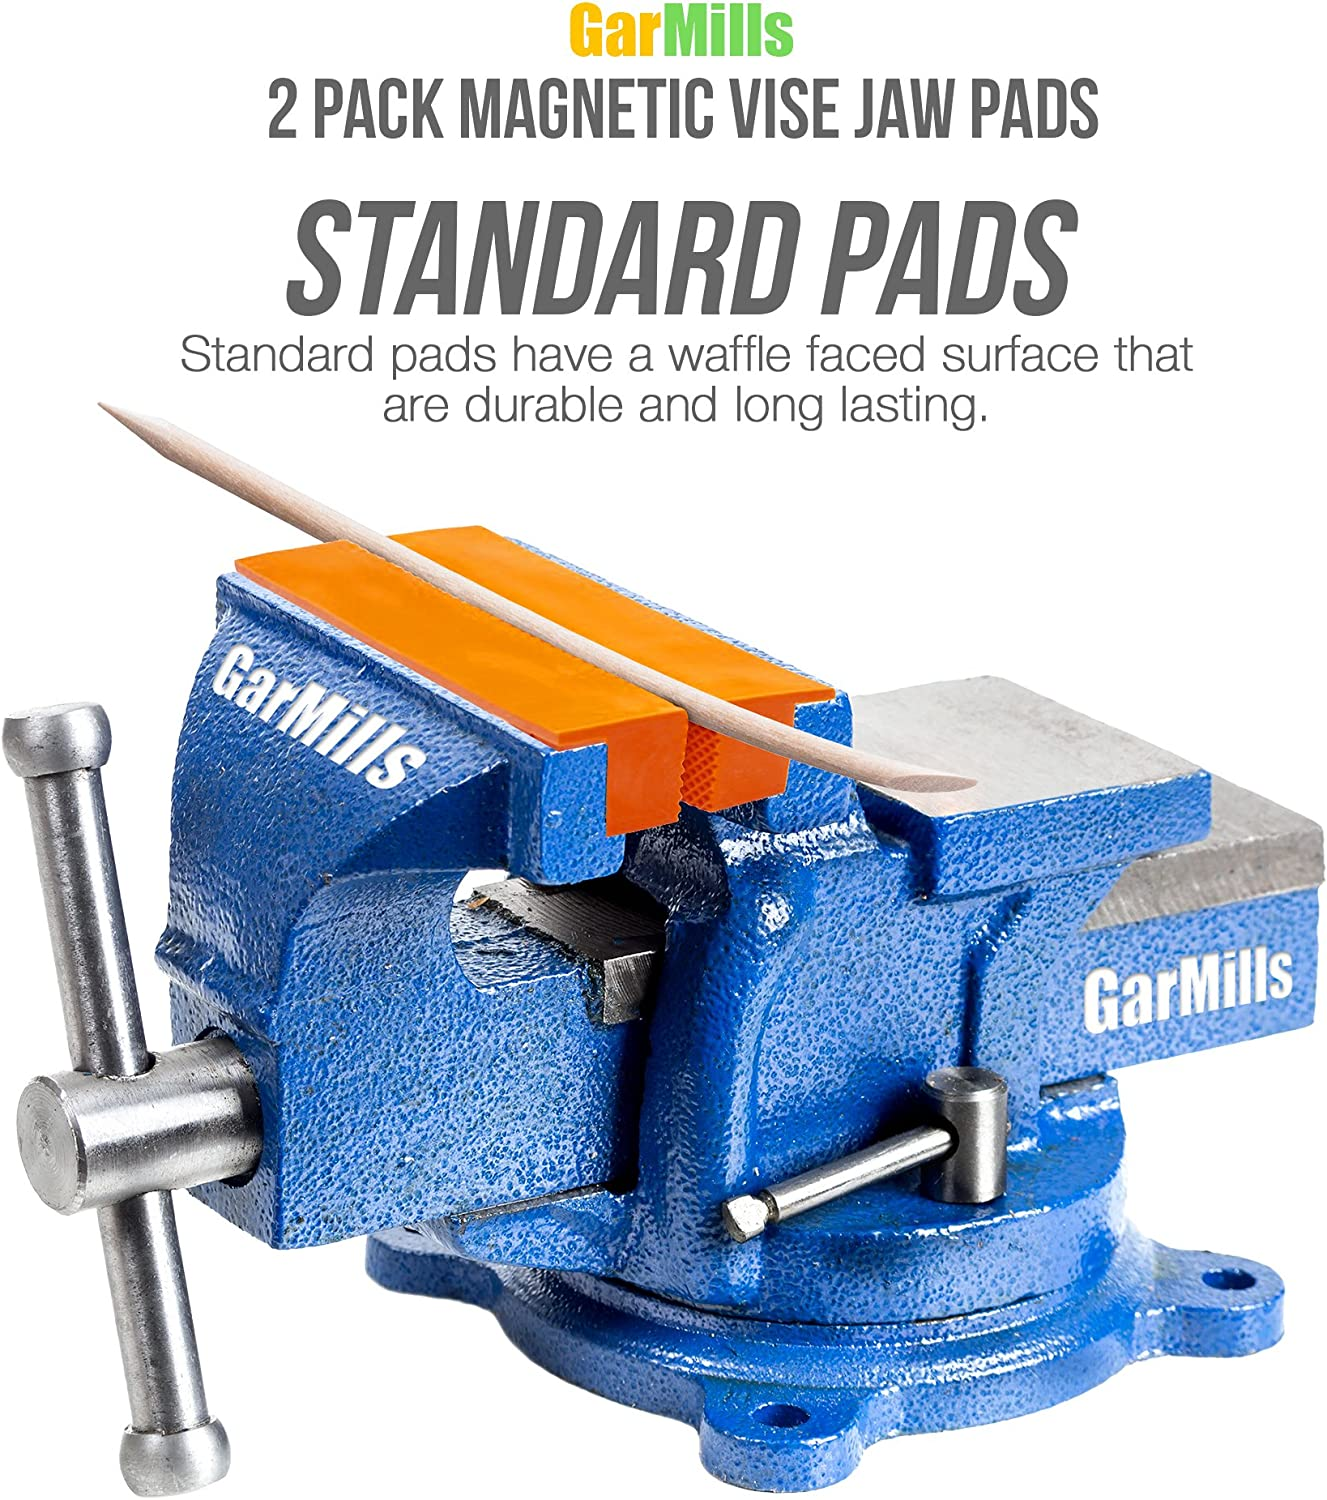 Vise Jaws // Vise Pads Magnetic Multi-Groove Soft Jaws - 4.5 Inch Length TPU